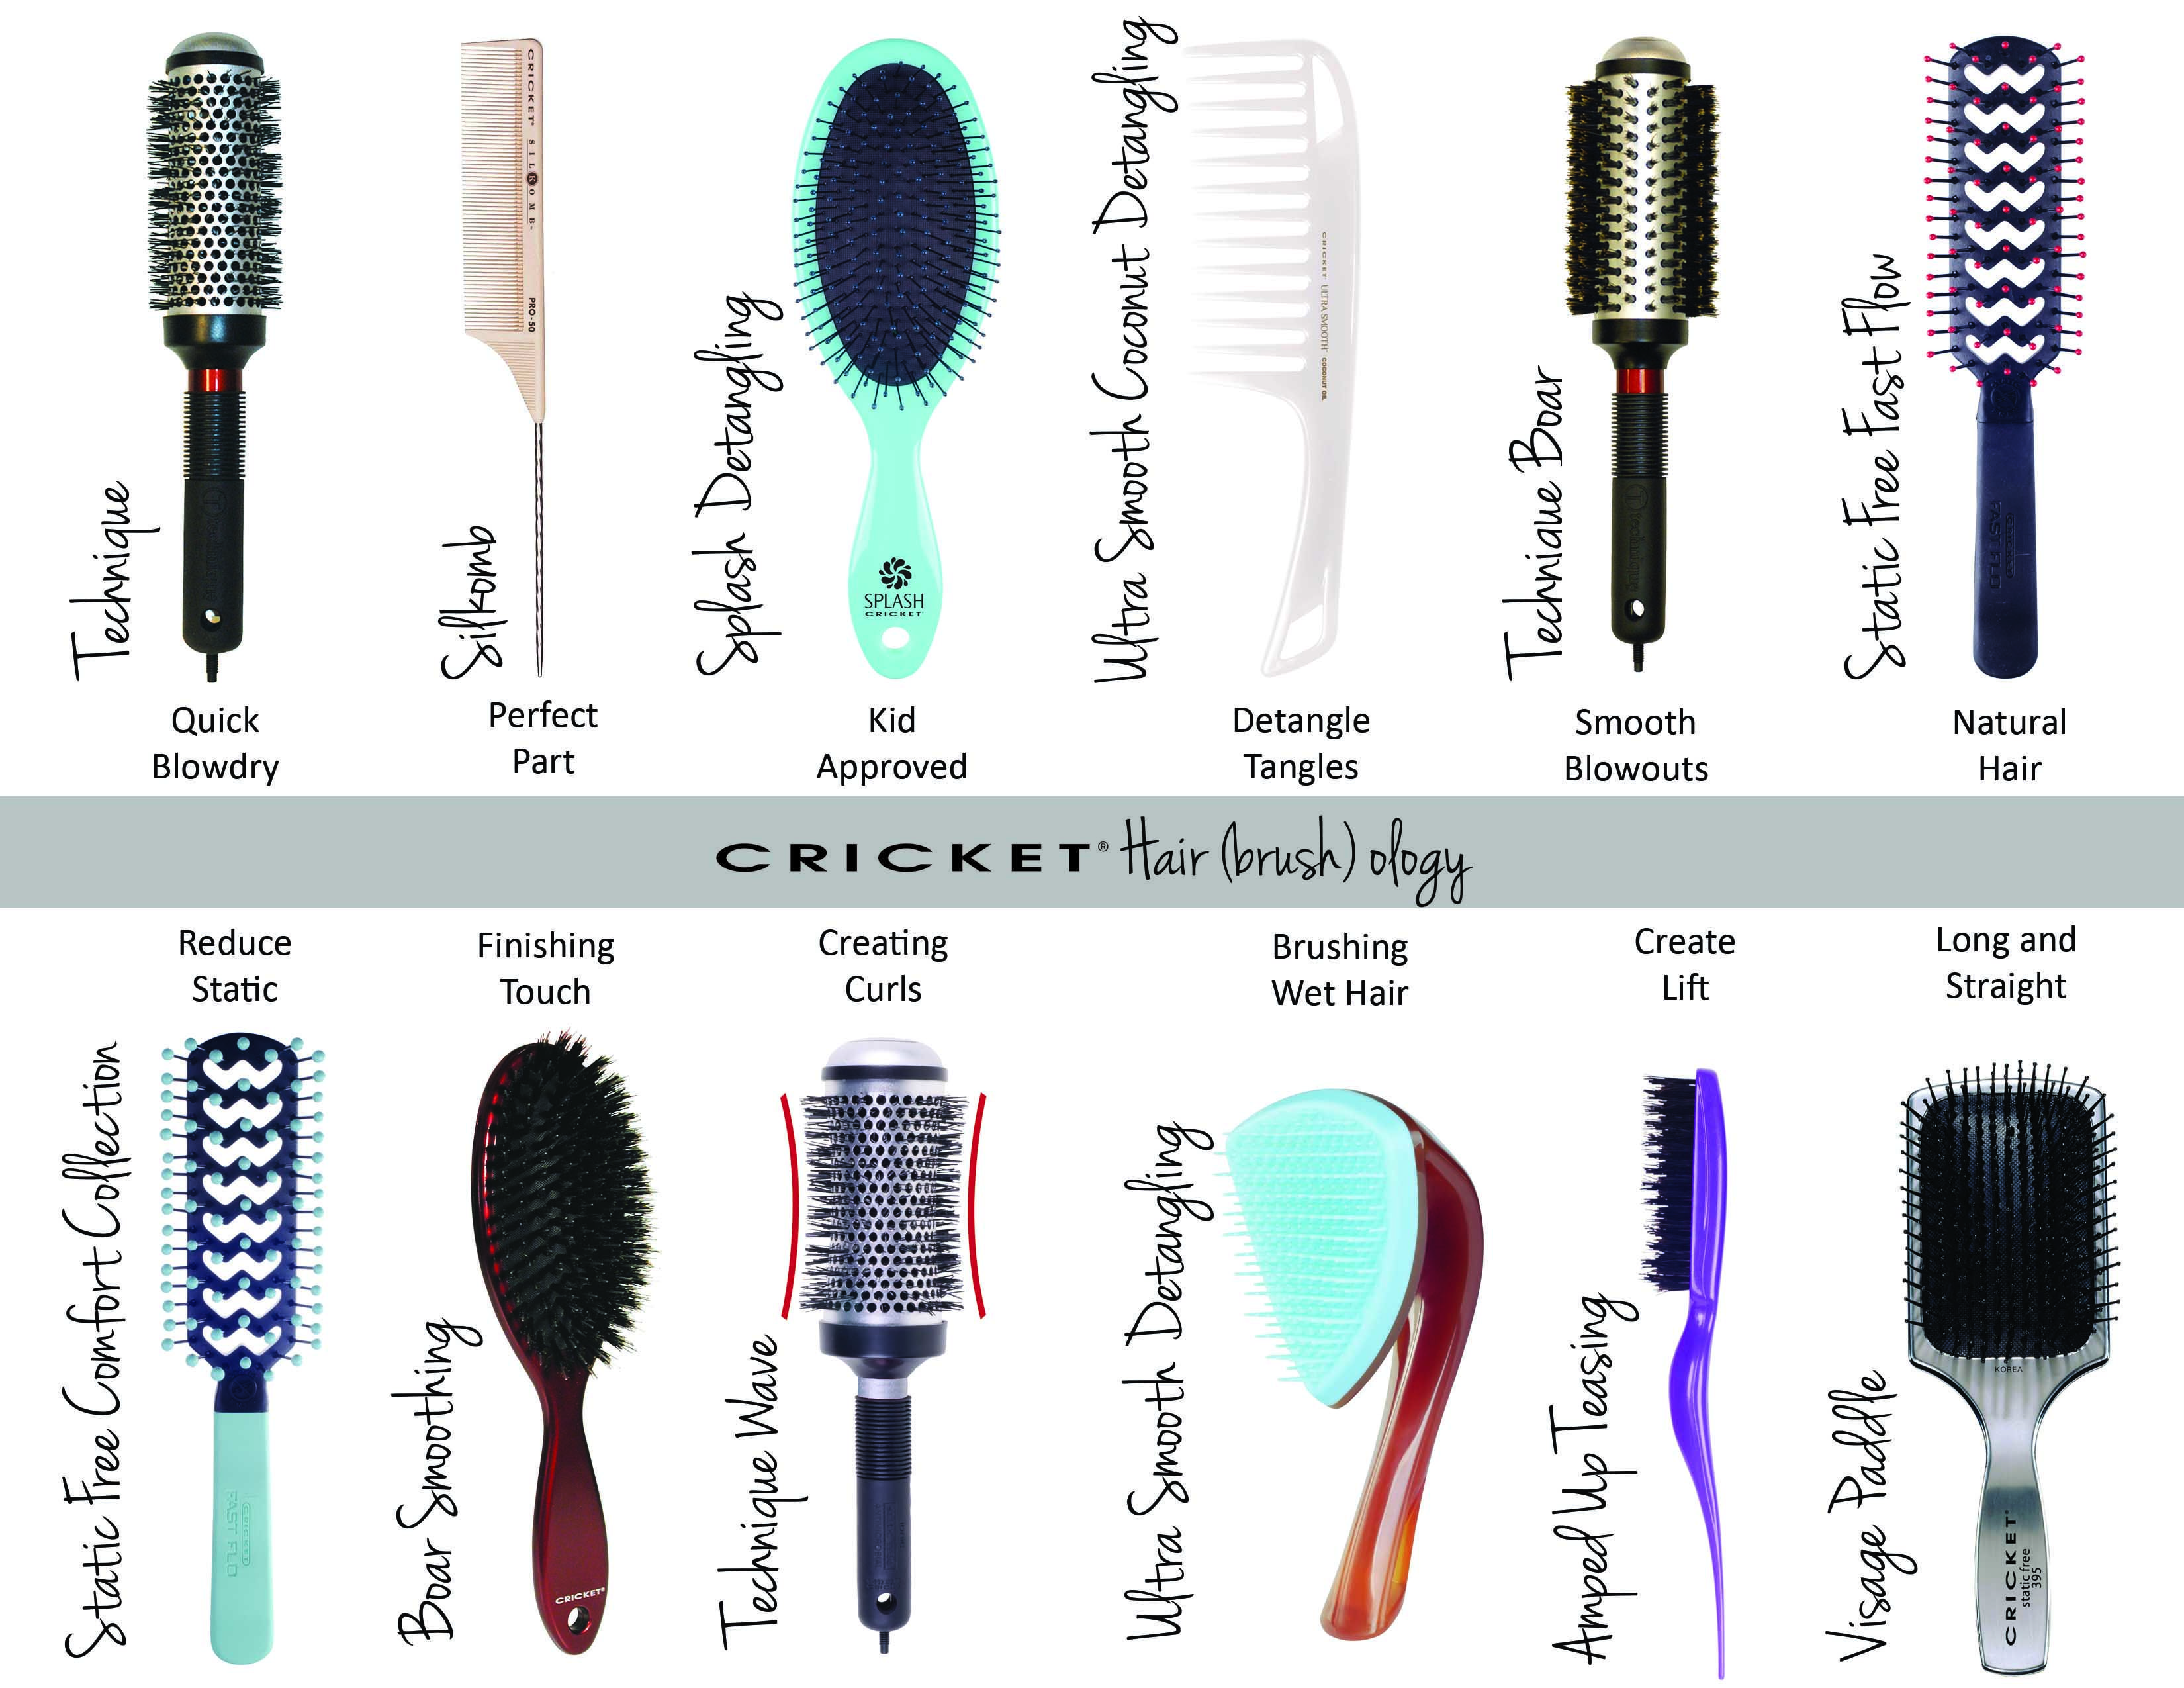 Cricket Hair Brush Ology A Guide For What Brush Is The Correct